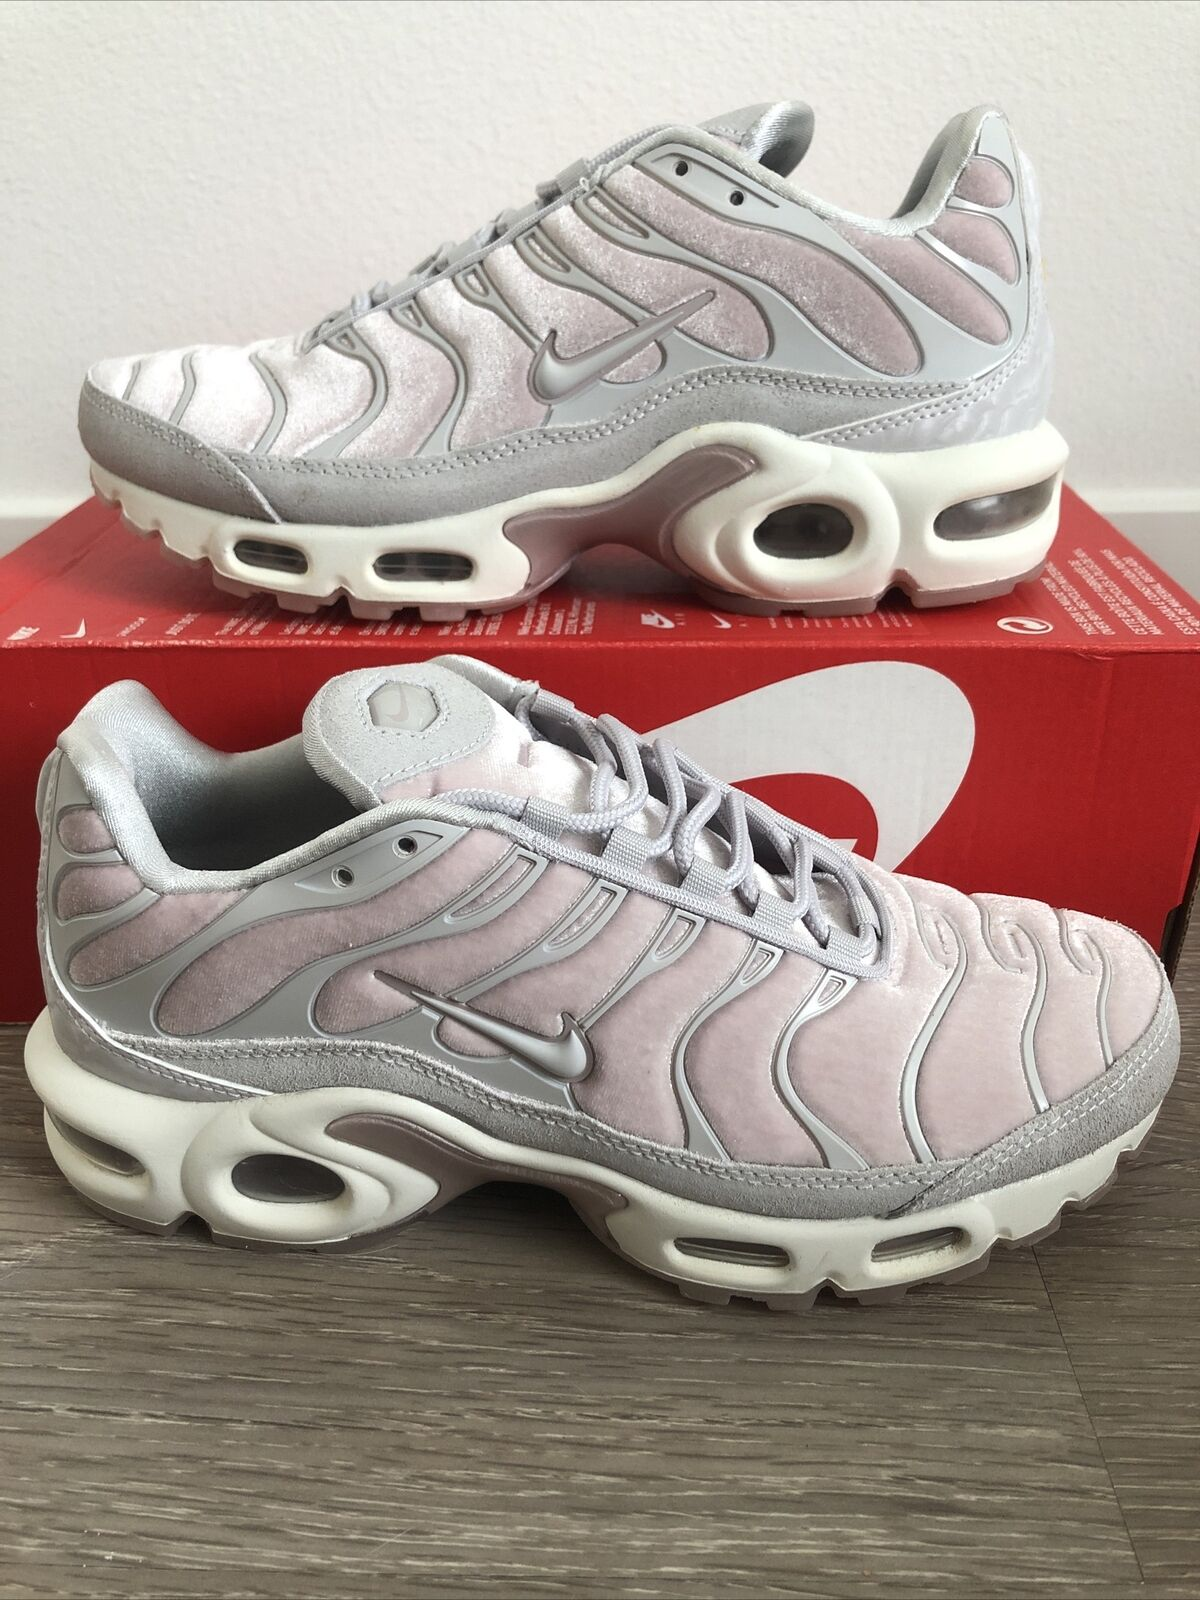 Size 7 - Nike Air Max Plus LX Particle Rose 2018 for sale online ...